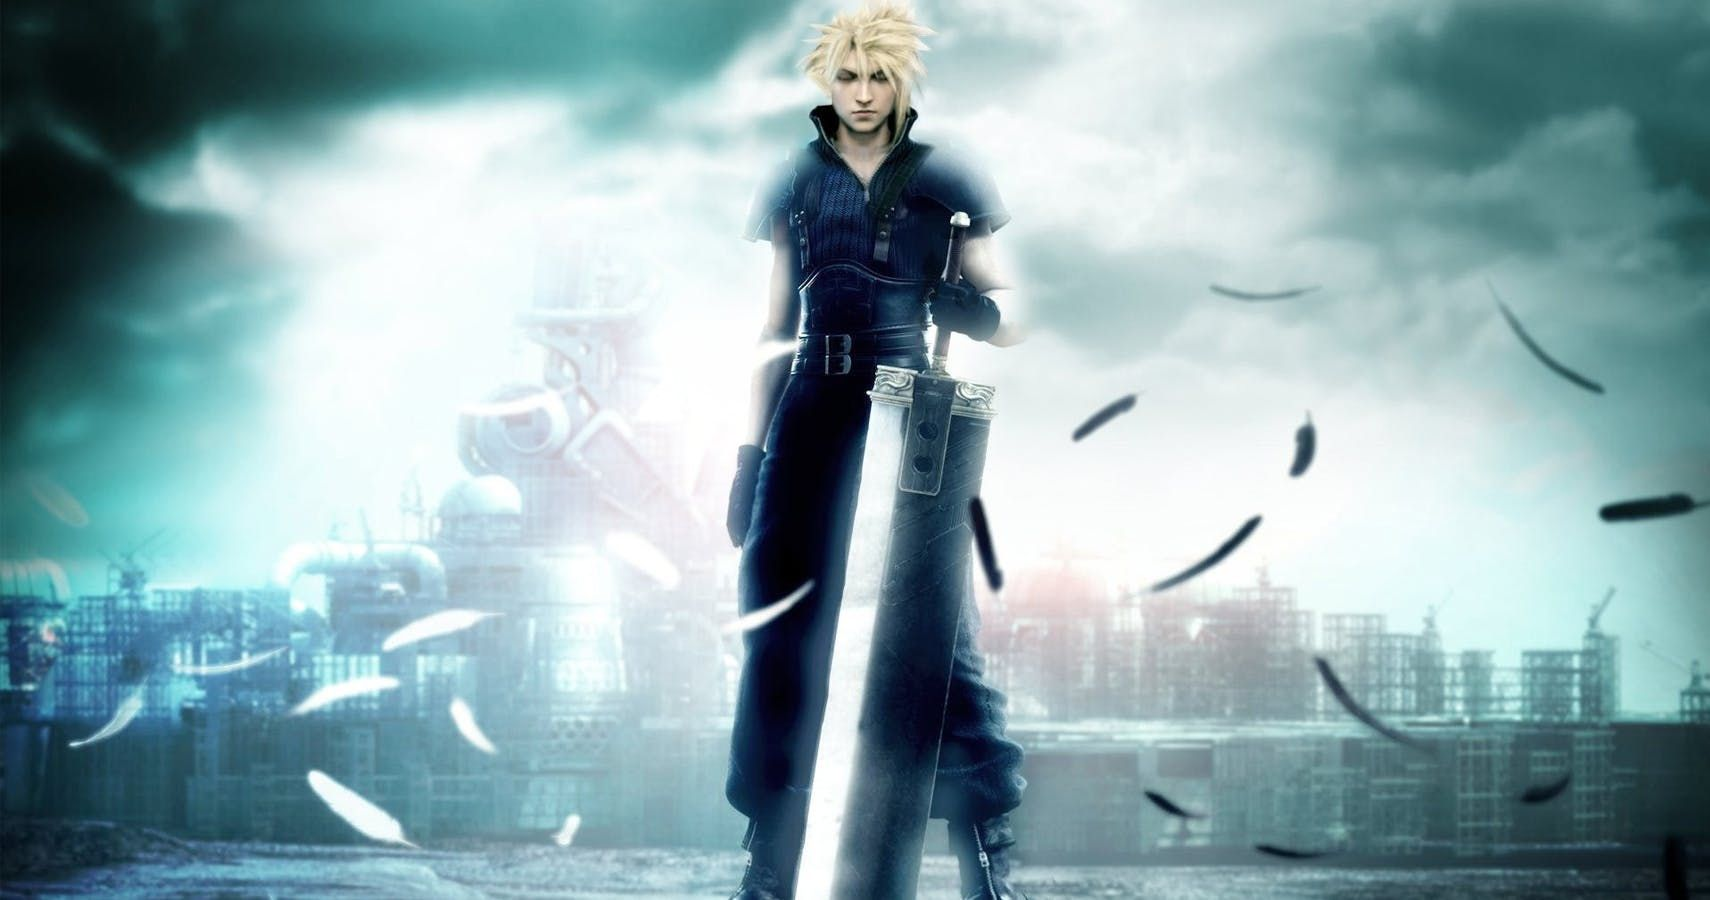 25 Weird Things About Cloud S Anatomy In Final Fantasy 7